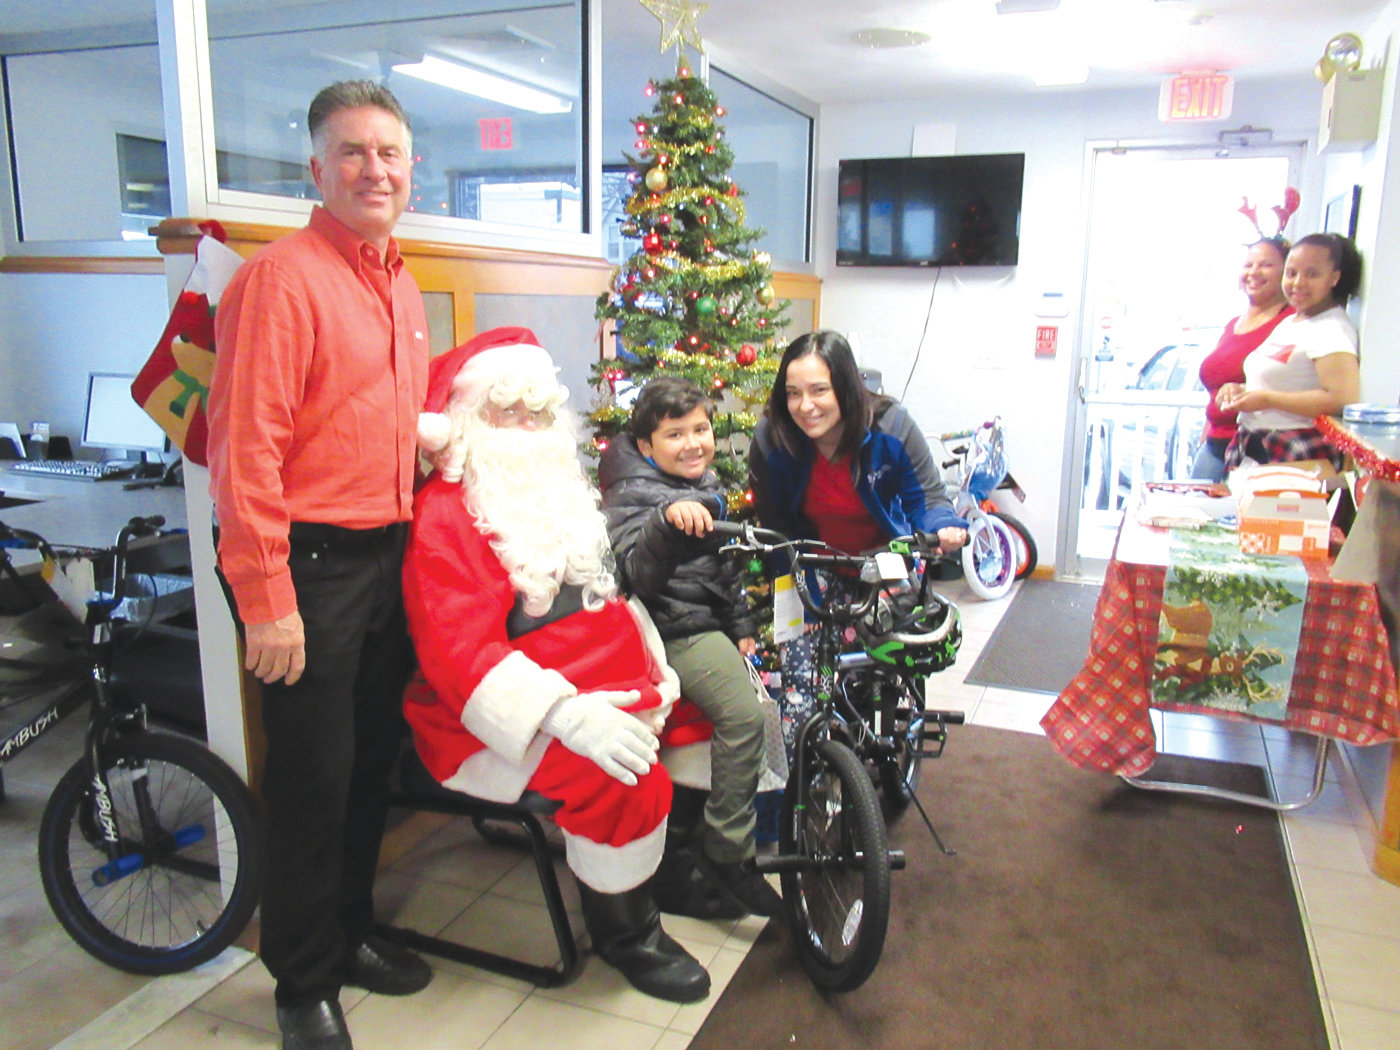 ROSALES' RIDE: Sergio Rosales, 6, a student at Sarah Dyer Barnes Elementary School in Johnston, sits stop his new bicycle inside Shannon Motors on Killingly Street and is joined by co-owner John Gosselin, Santa Claus and Office Manager Gina Amore